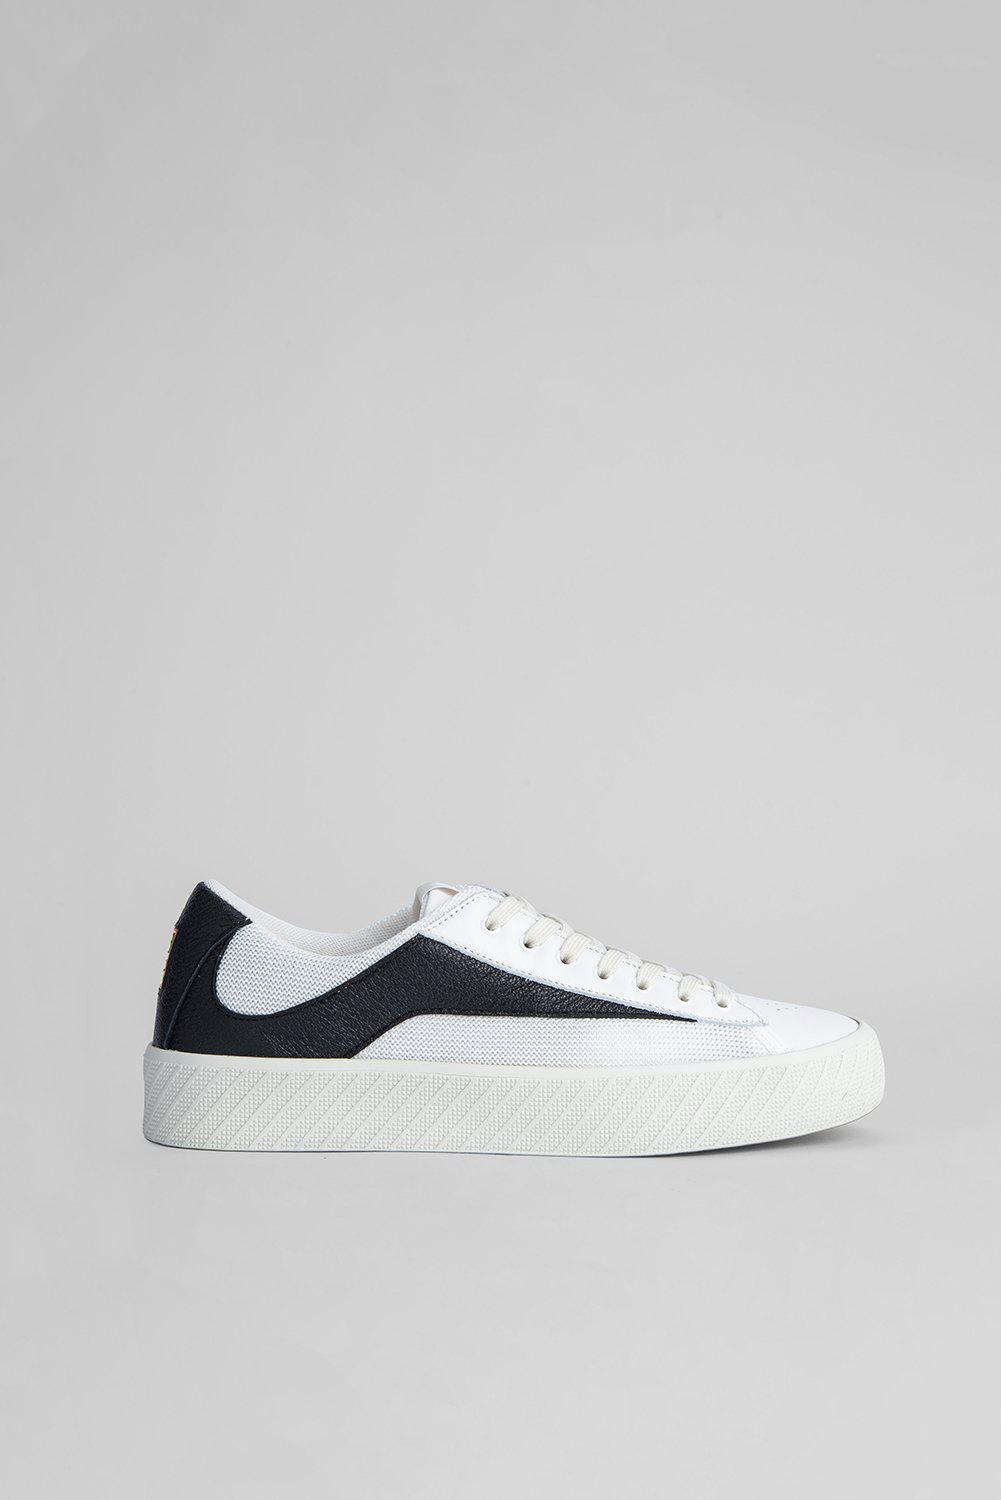 Rodina White And Black Grained Leather